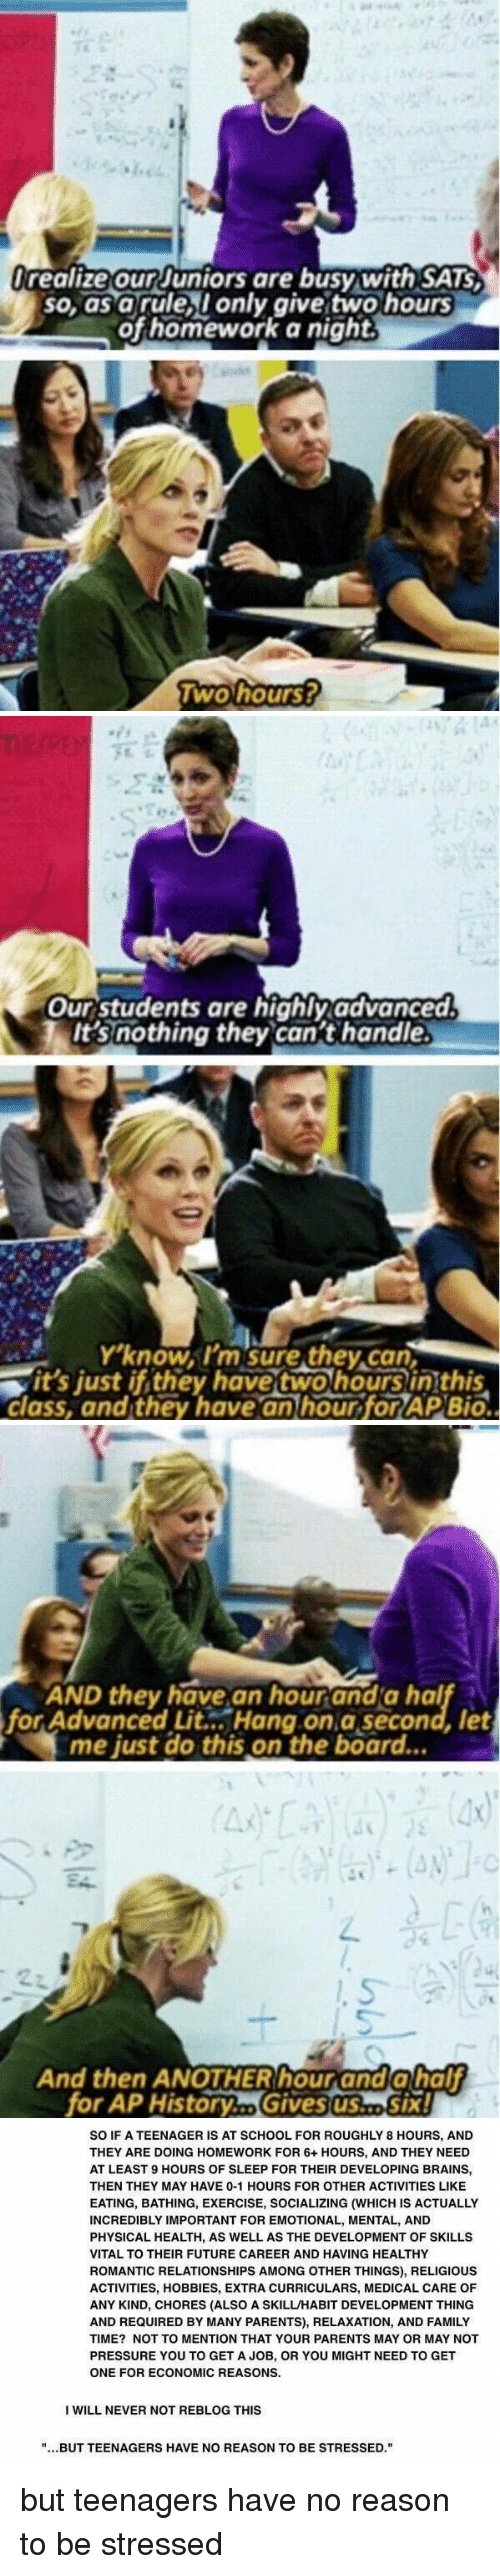 Girl Memes, Incredibles, and Aps: l realize our Juniors are busy with SATS  so, as a rule I only give two hours  of homework a right  Two hours?   Our students are highly advanced.  TIt's nothing they can't handle.  Y'know, I'm sure they can  it's just if they have two hours in this  class, and they have an hour forAP Bio.   AND they have an hourand a hal  for Advanced Lit Hang on a second let  me just do this on the board...  And then ANOTHER hour and a half  for AP History Six!   SO IF A TEENAGER IS AT SCHOOL FOR ROUGHLY 8 HOURS, AND  THEY ARE DOING HOMEWORK FOR 6+ HOURS, AND THEY NEED  AT LEAST 9 HOURS OF SLEEP FOR THEIR DEVELOPING BRAINS,  THEN THEY MAY HAVE 0-1 HOURS FOR OTHER ACTIVITIES LIKE  EATING, BATHING, EXERCISE, SOCIALIZING (WHICH IS ACTUALLY  INCREDIBLY IMPORTANT FOR EMOTIONAL, MENTAL, AND  PHYSICAL HEALTH, AS WELL AS THE DEVELOPMENT OF SKILLS  VITAL TO THEIR FUTURE CAREER AND HAVING HEALTHY  ROMANTIC RELATIONSHIPS AMONG OTHER THINGS, RELIGIOUS  ACTIVITIES, HOBBIES, EXTRA CURRICULARS, MEDICAL CARE OF  ANY KIND, CHORES (ALSO A SKILL/HABIT DEVELOPMENT THING  AND REQUIRED BY MANY PARENTS), RELAXATION, AND FAMILY  TIME? NOT TO MENTION THAT YOUR PARENTS MAY OR MAY NOT  PRESSURE YOU TO GET A JOB, OR YOU MIGHT NEED TO GET  ONE FOR ECONOMIC REASONS.  I WILL NEVER NOT REBLOG THIS  BUTTEENAGERS HAVE NO REASON TO BE STRESSED but teenagers have no reason to be stressed